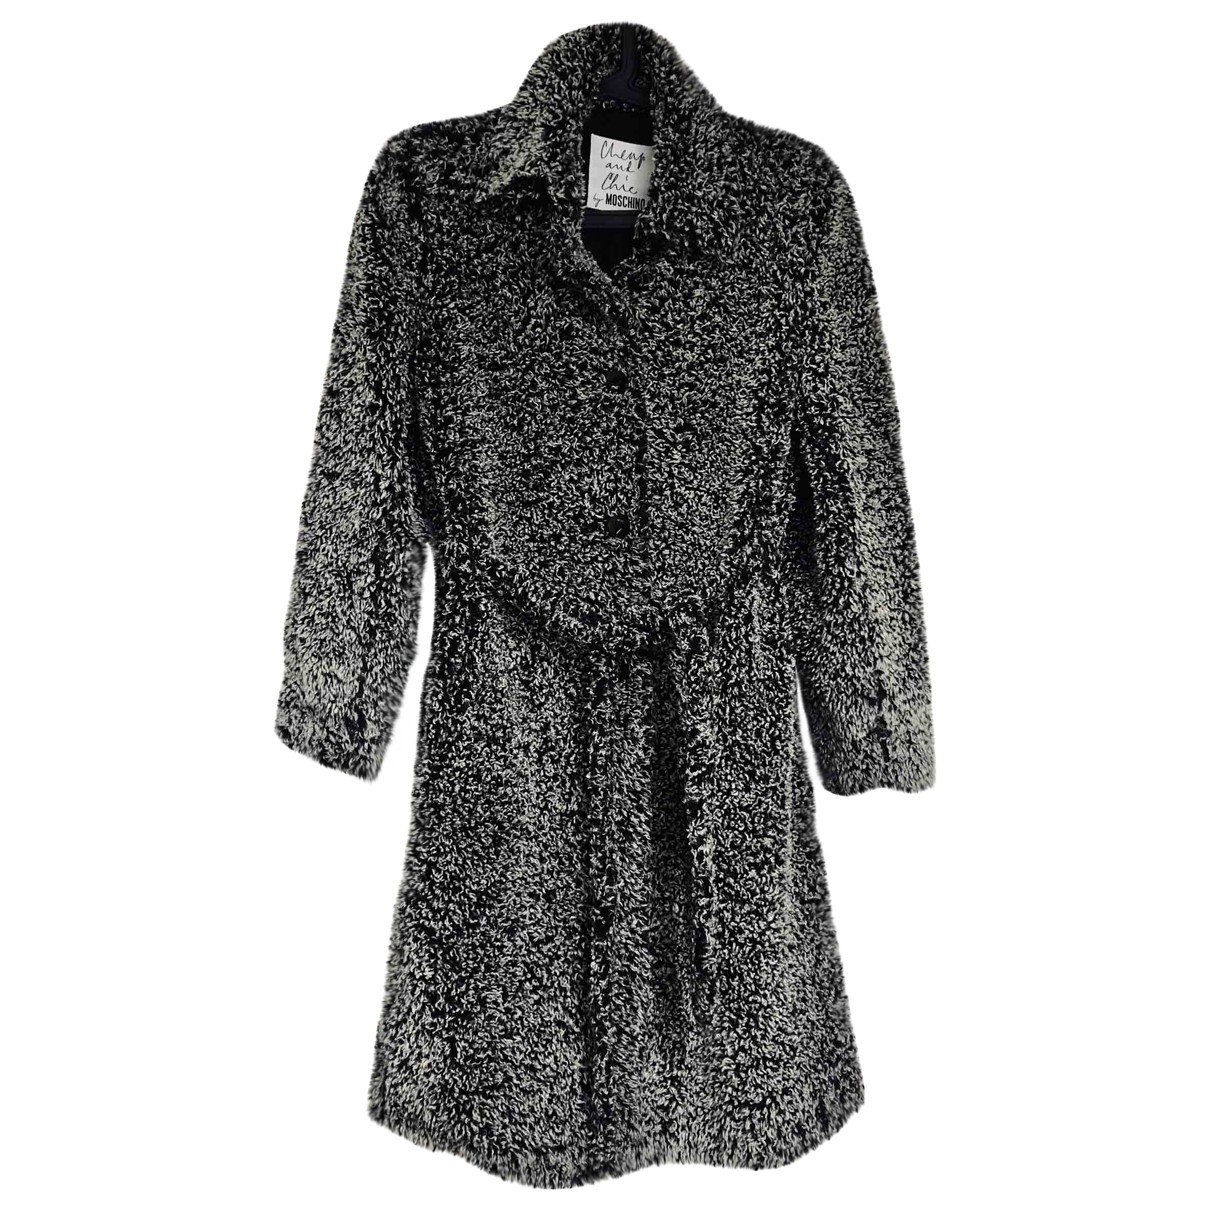 Moschino Cheap And Chic \N Black coat for Women 38 FR